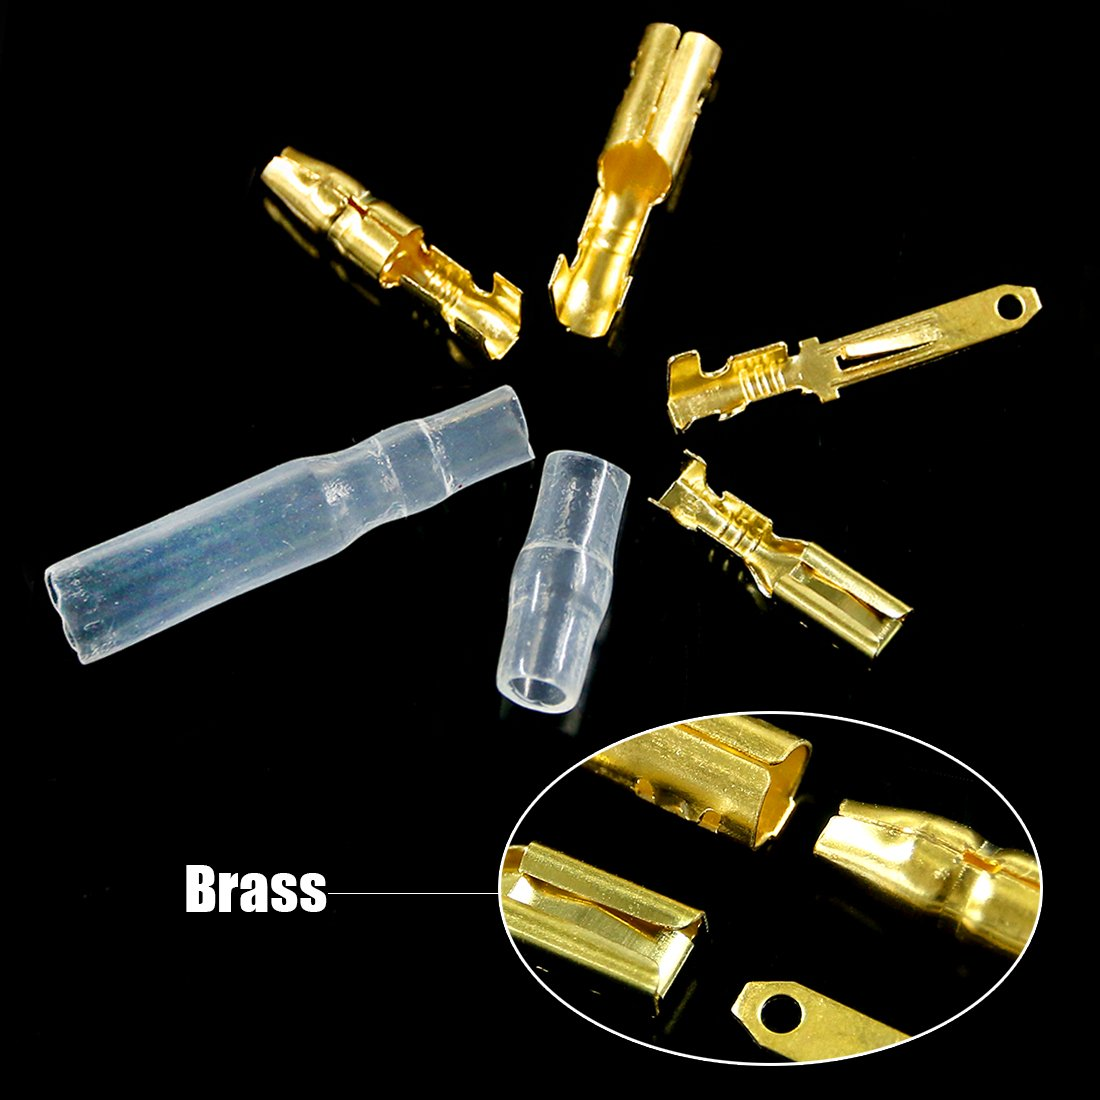 Glarks 700Pcs 2 3 4 6 9 Pin Plug Housing Pin Header Crimp Electrical Wire Terminals Connector and 30 Sets 4mm Car Motorcycle Bullet Terminal Connector Assortment Kit for Motorcycle Bike Boats Car